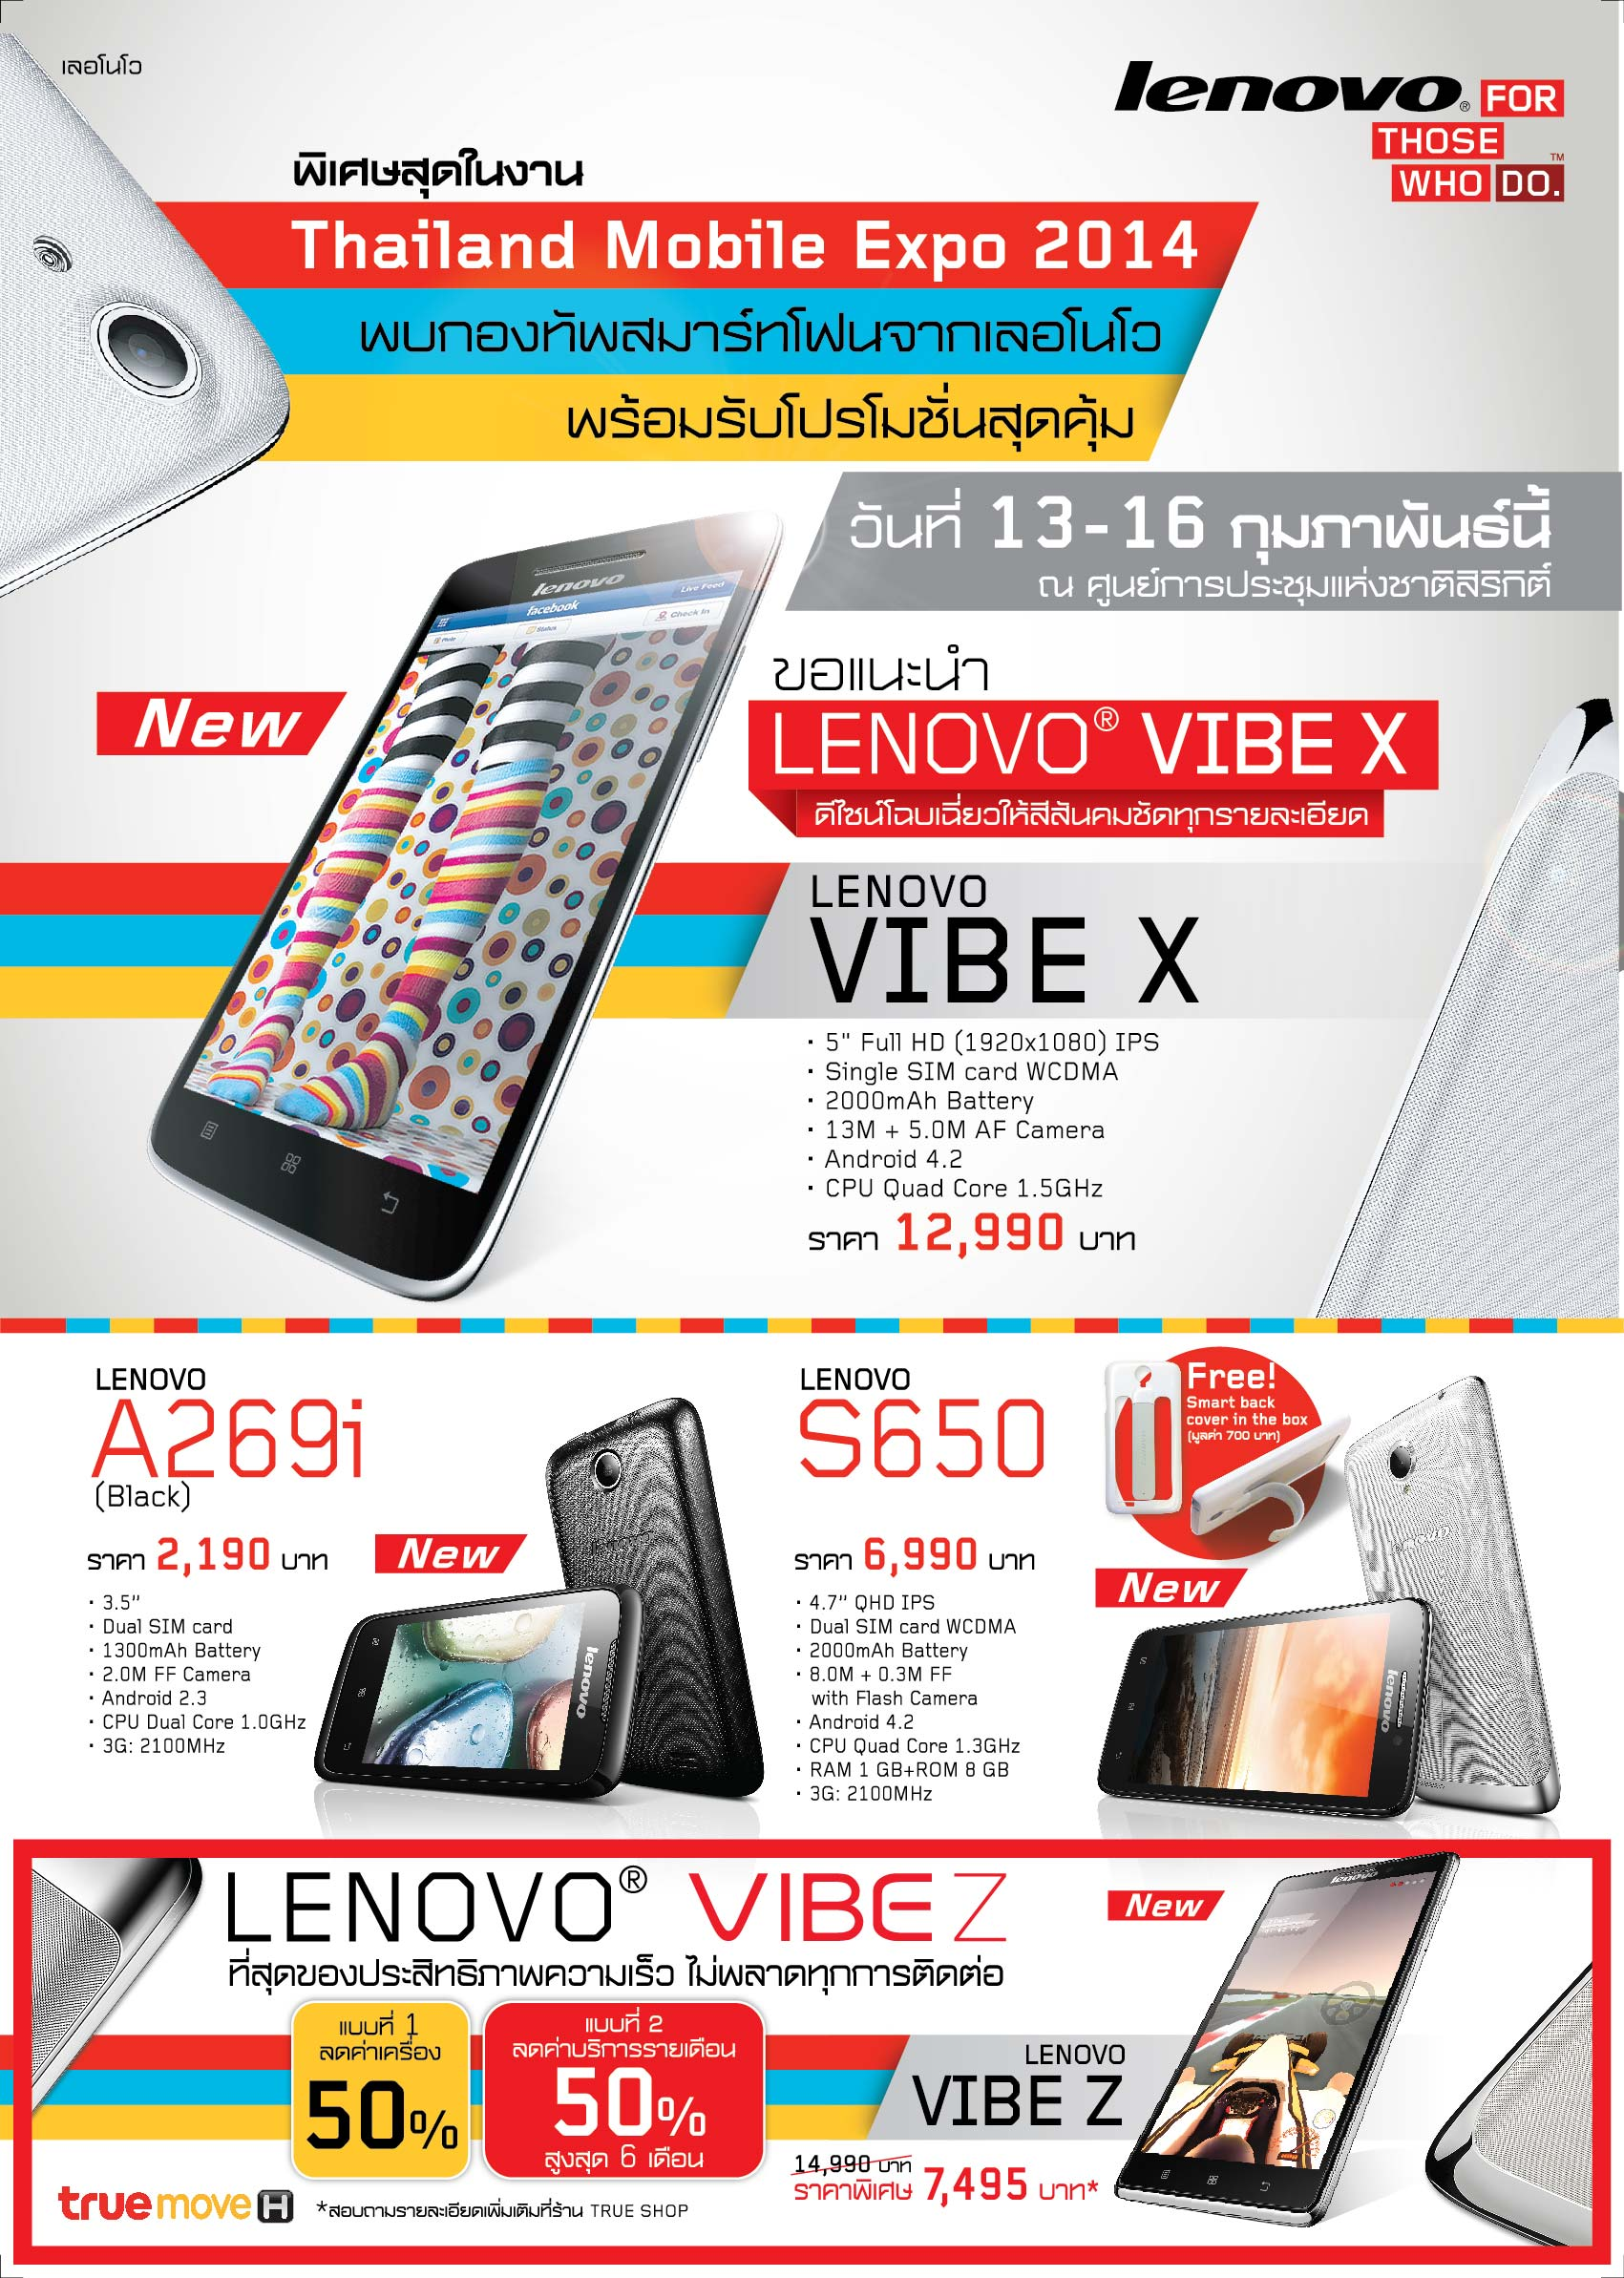 AW LNV SmartPhone Leaflet A4 Mobile Expo Final 2070257 01